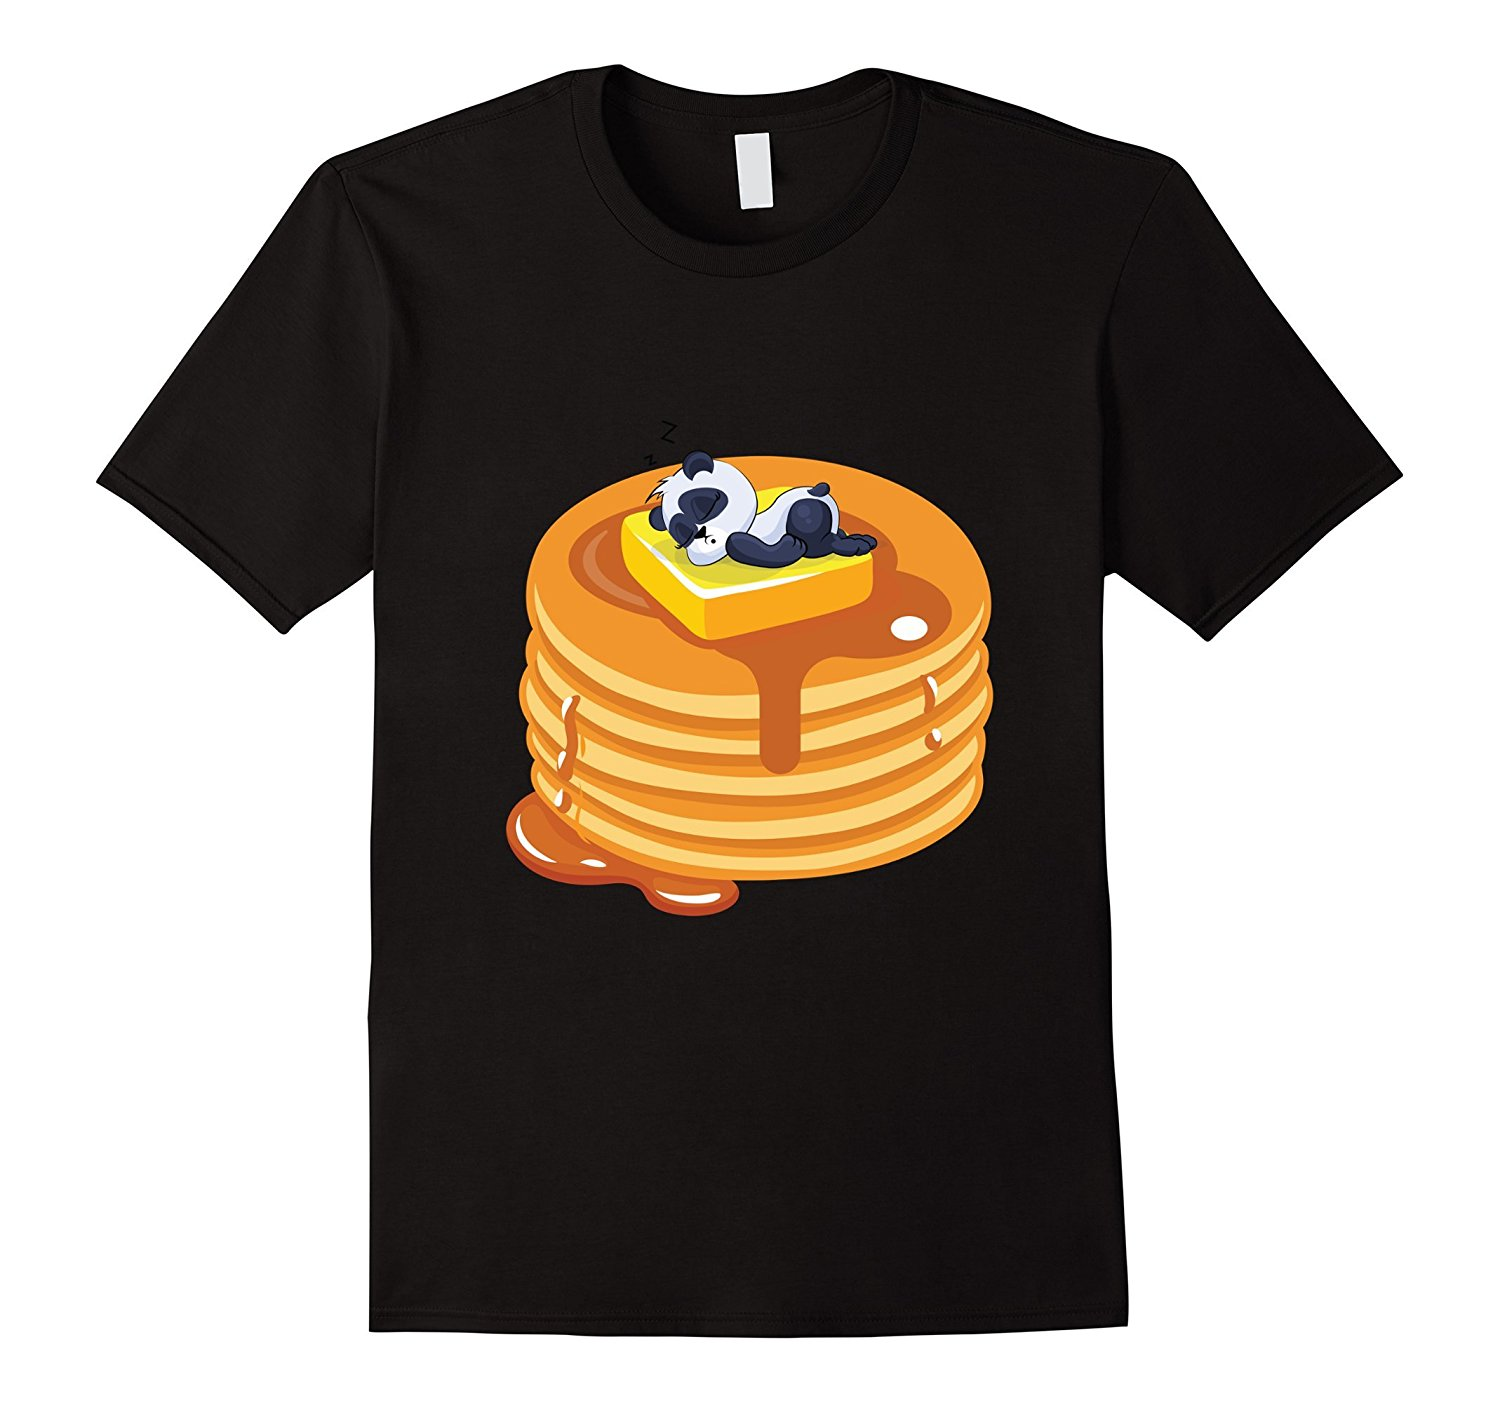 Baby Panda Resting on Top of Pancakes Cute Baker T-Shirt Tricolor Top Tee Tops Men Tee Shirts Top Tee Fashion Men T Shirt